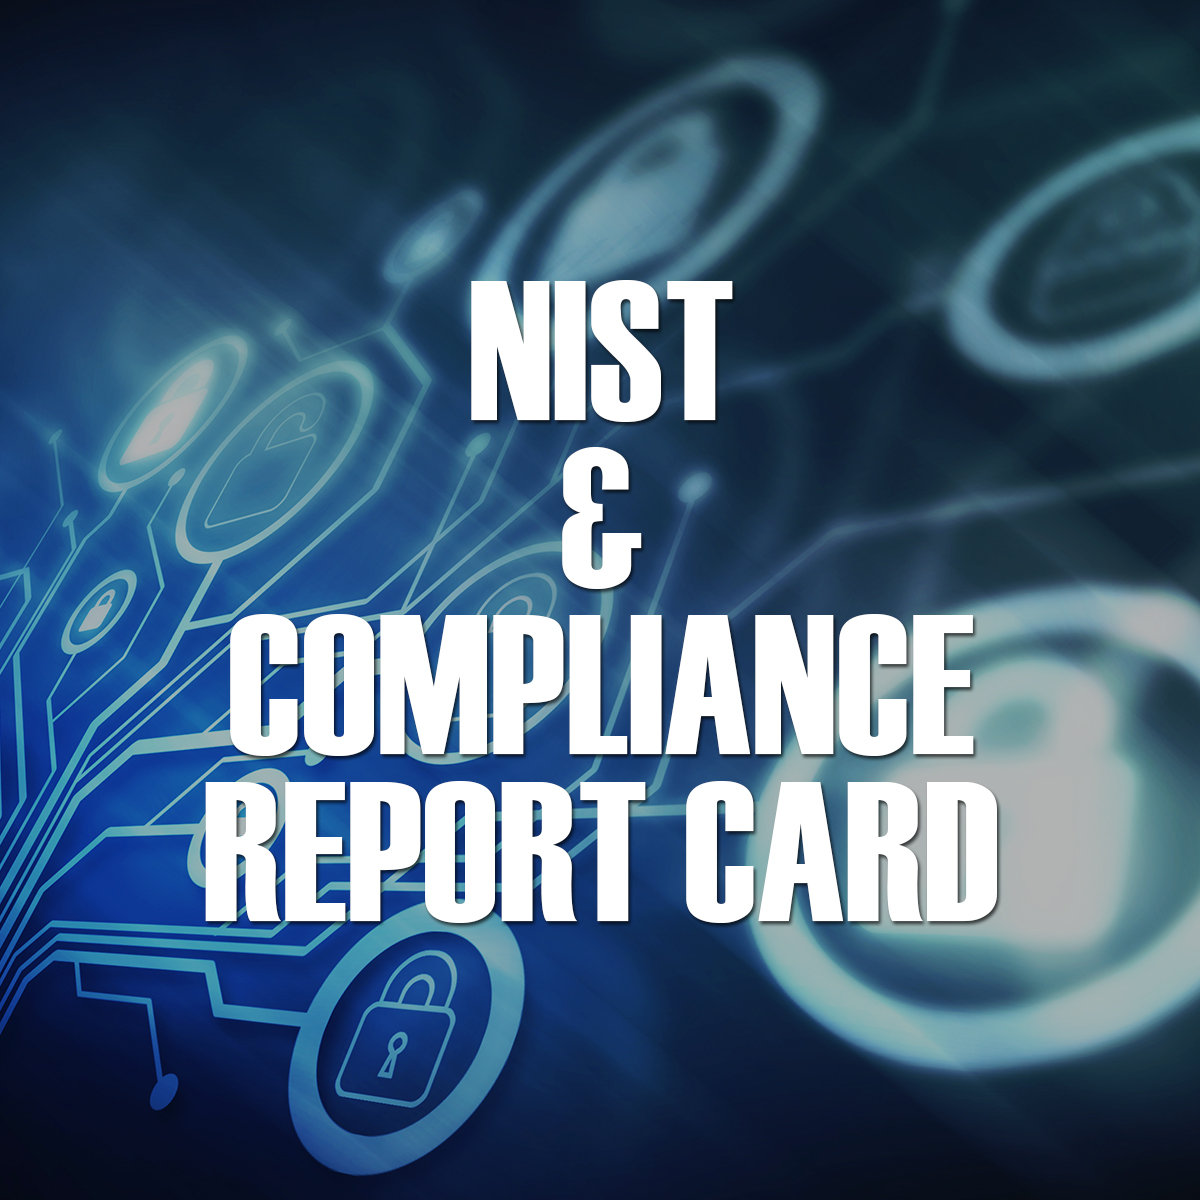 NIST & Compliance Report Card